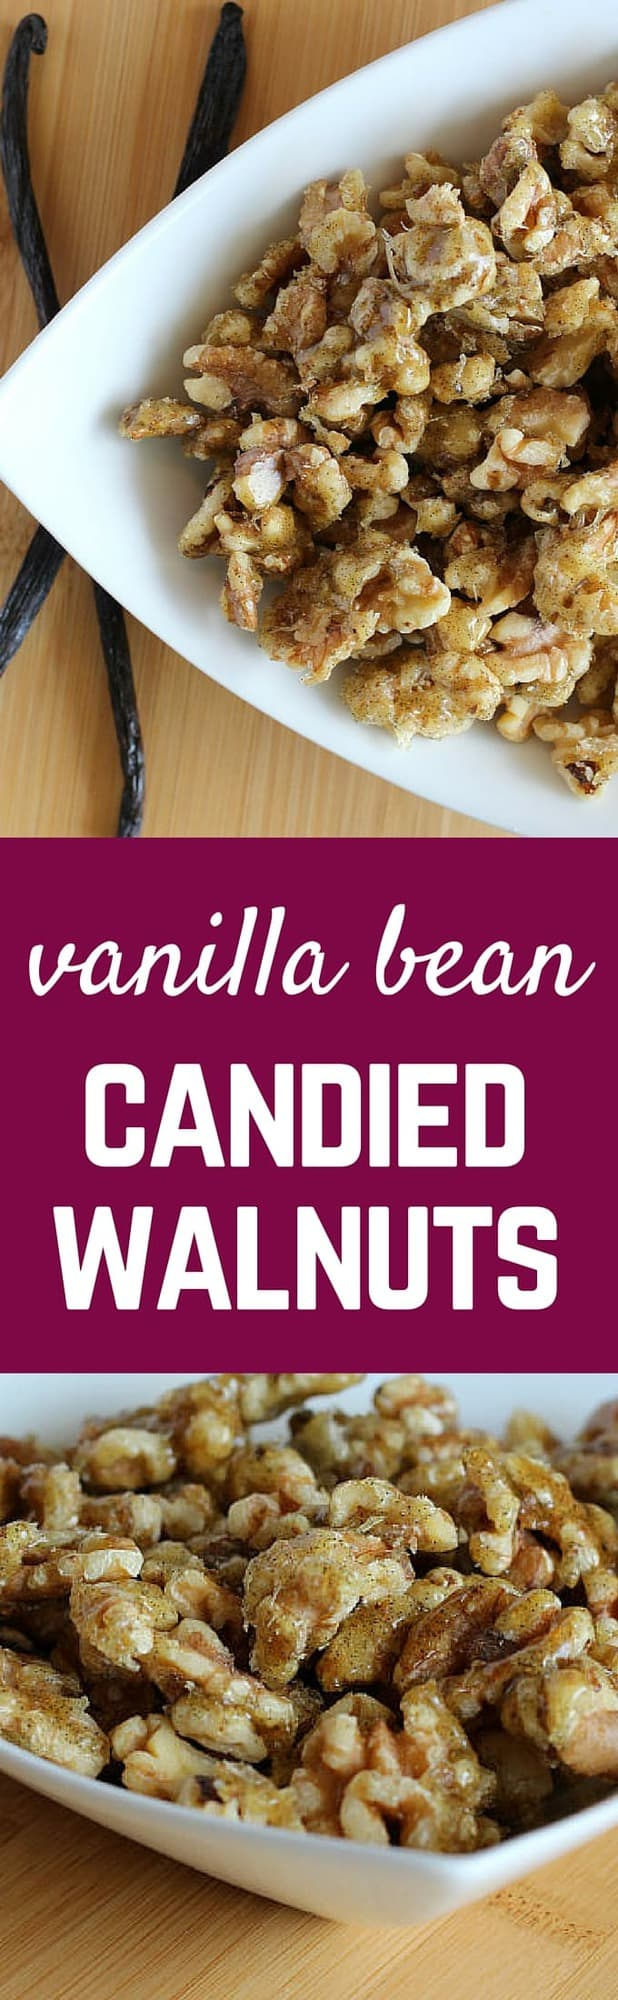 These Vanilla Bean Candied Walnuts are completely and totally irresistible. They're perfect on salads! Get the easy recipe on RachelCooks.com!